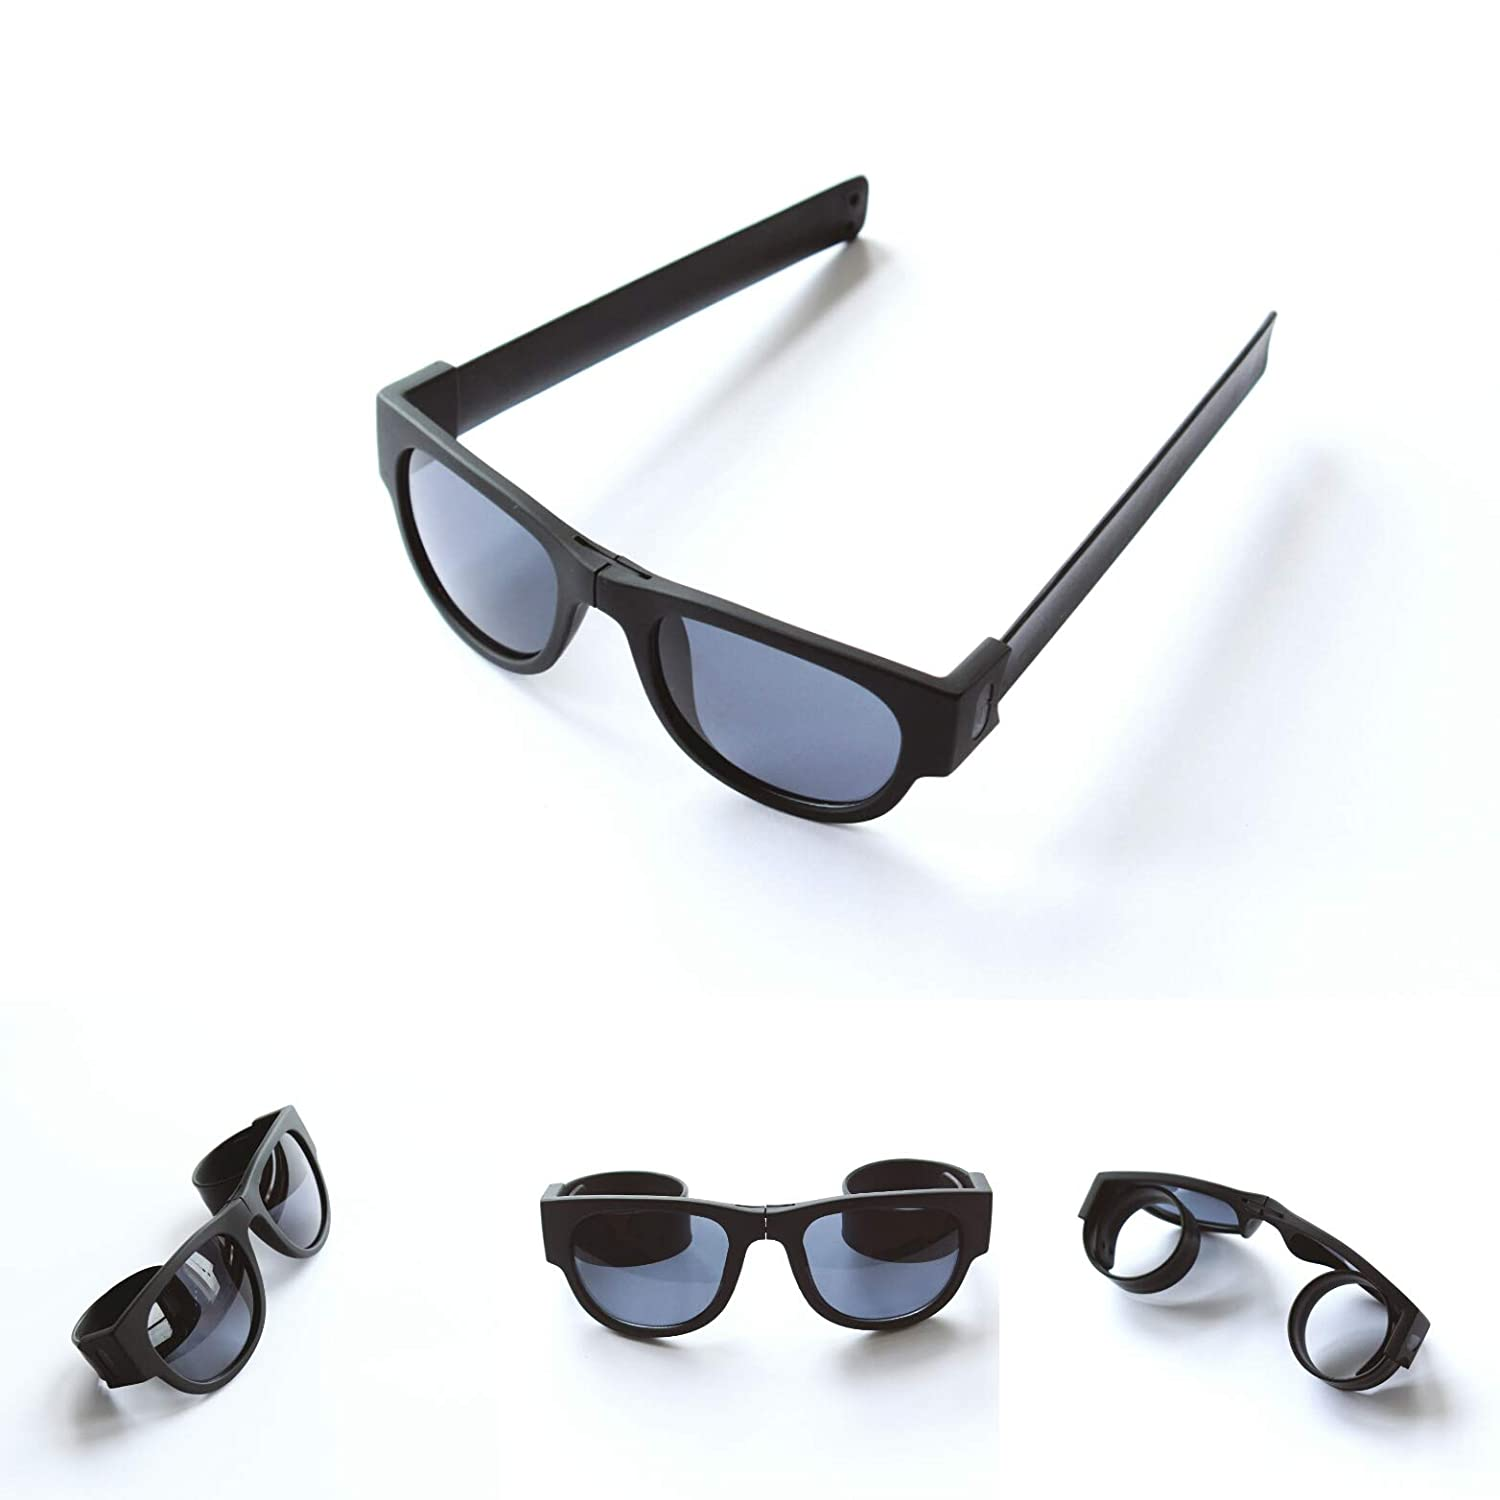 Slap-On - Gafas de sol unisex plegables y enrollables para ...